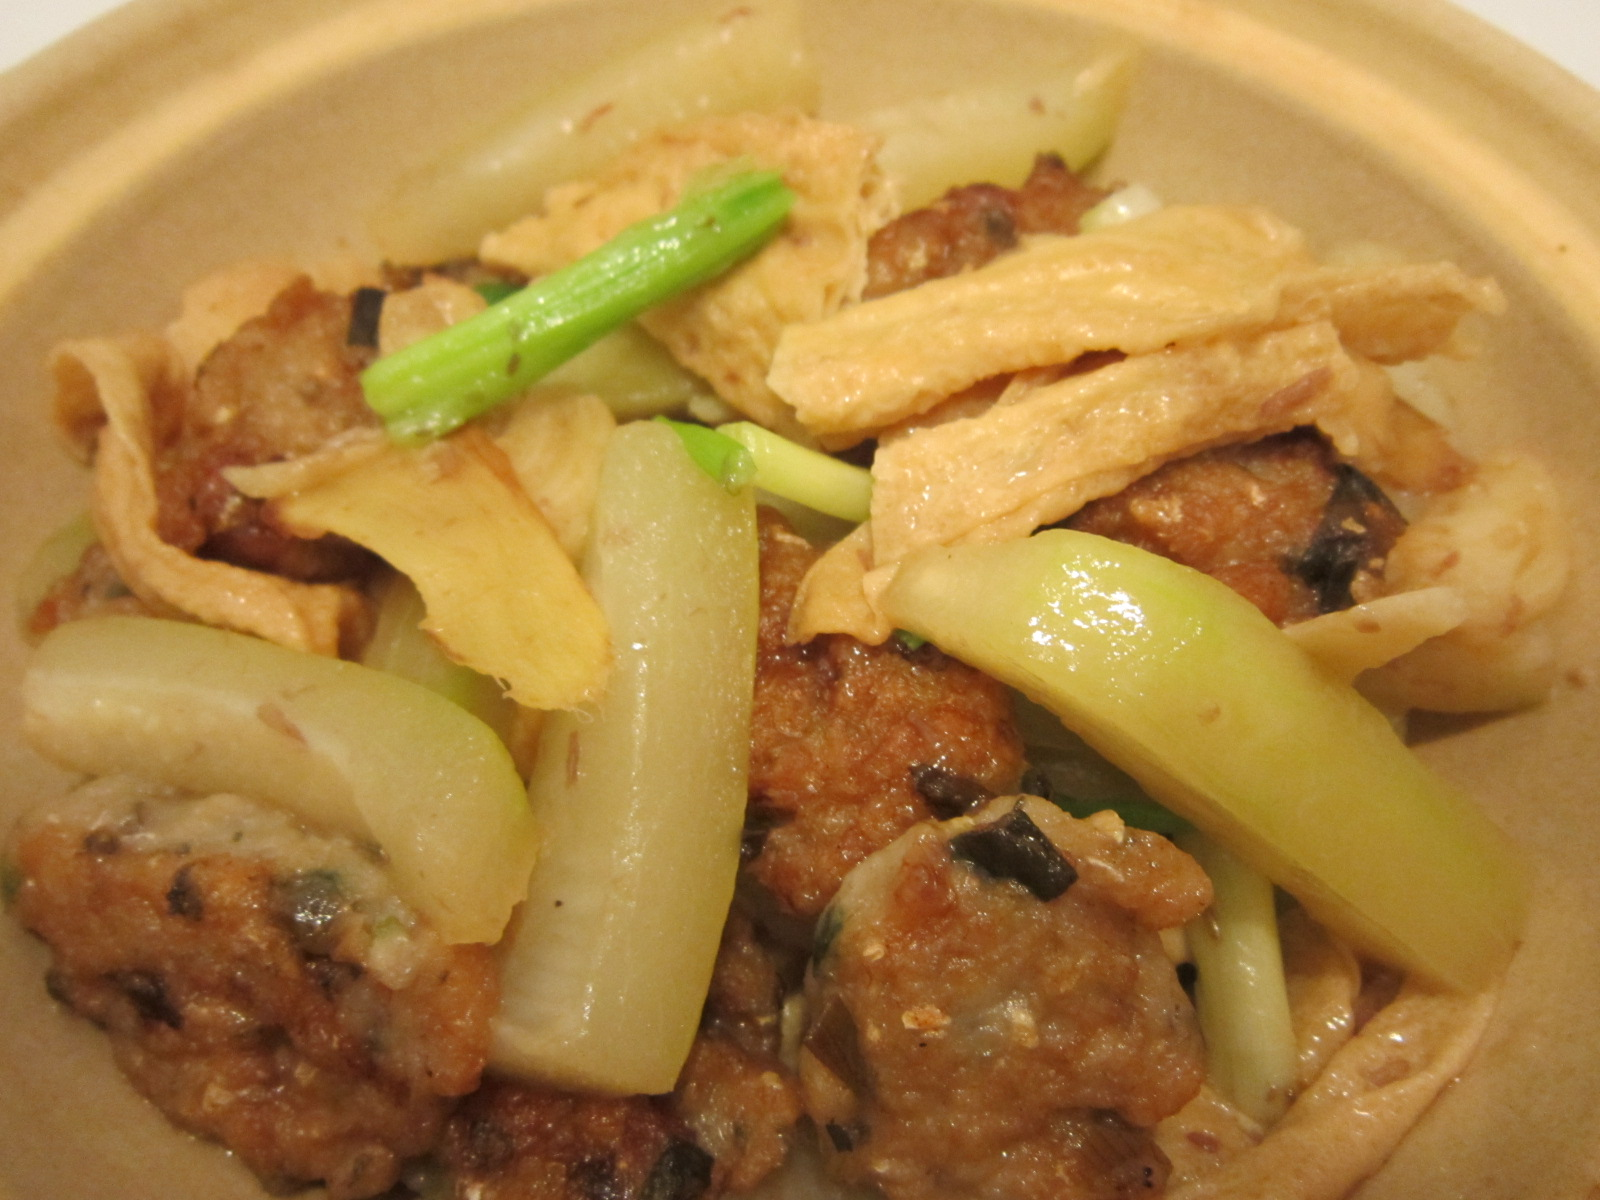 ... : Stir Fried Fuzzy Melon with Fried Minced Fish & Bean curd Stick